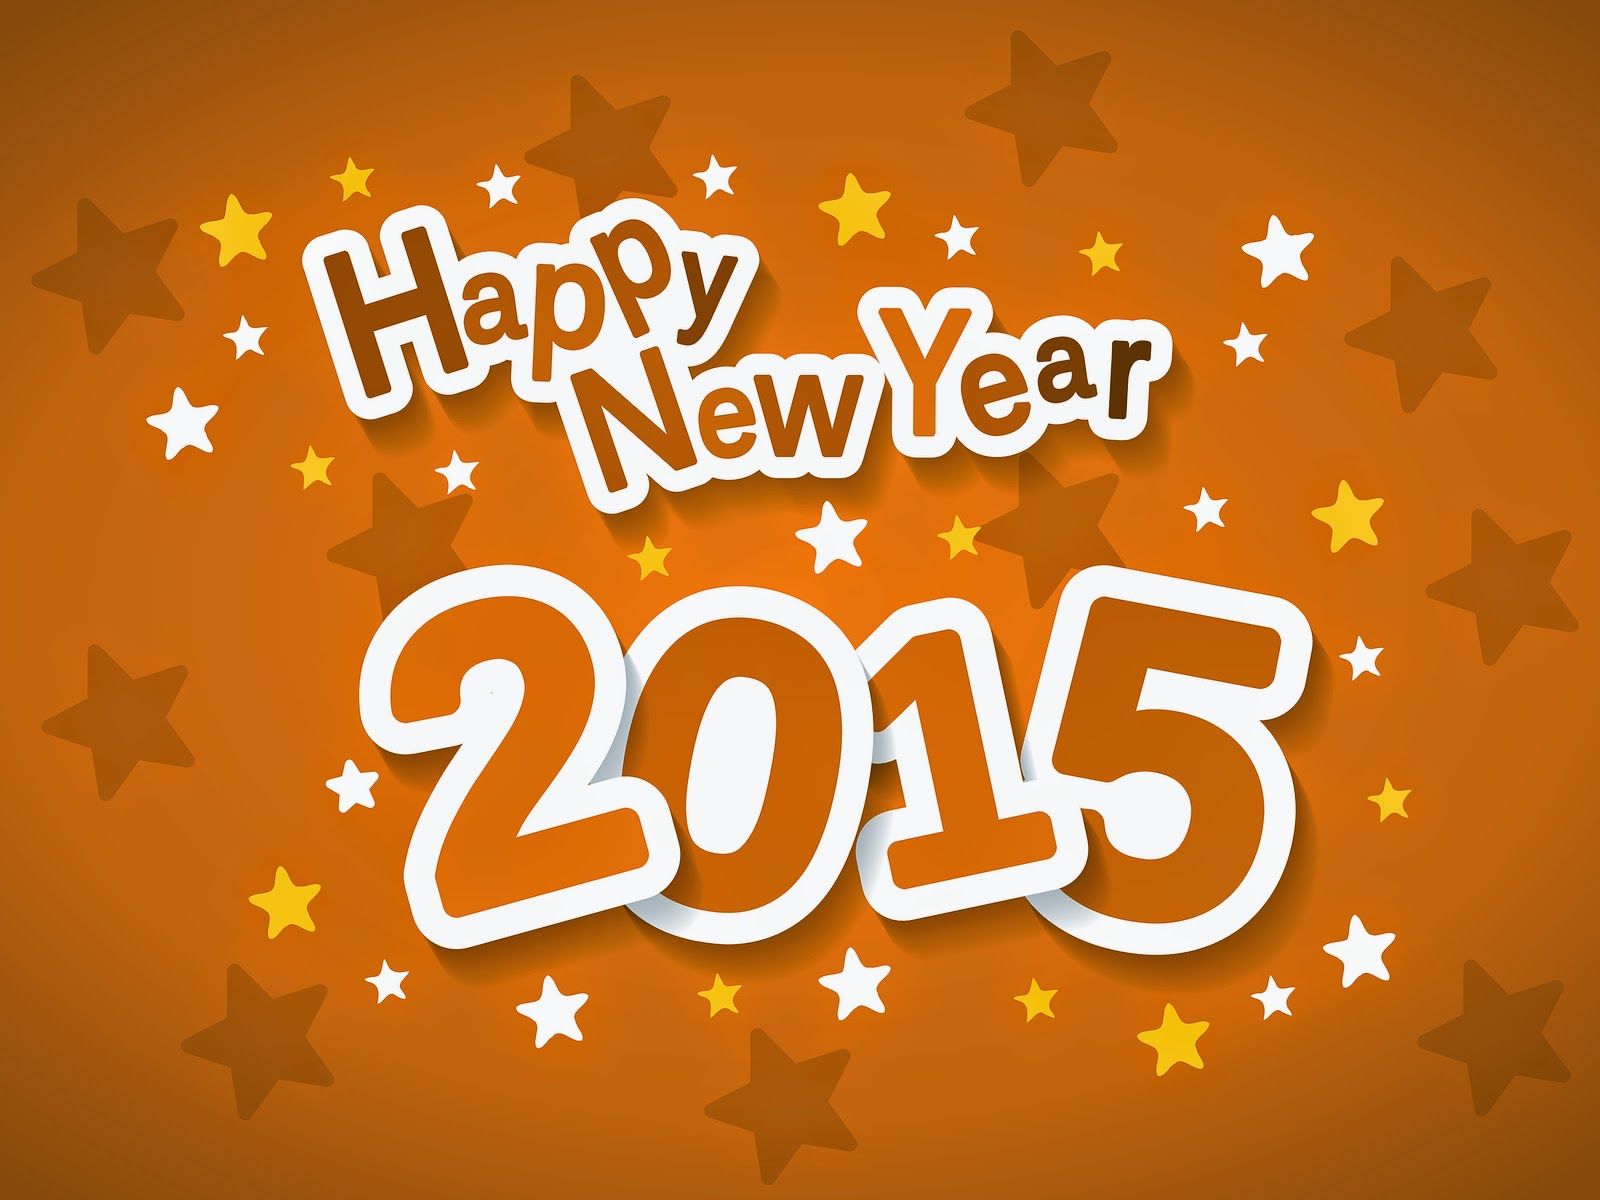 Beautiful Happy New Year Backgrounds Free 2015